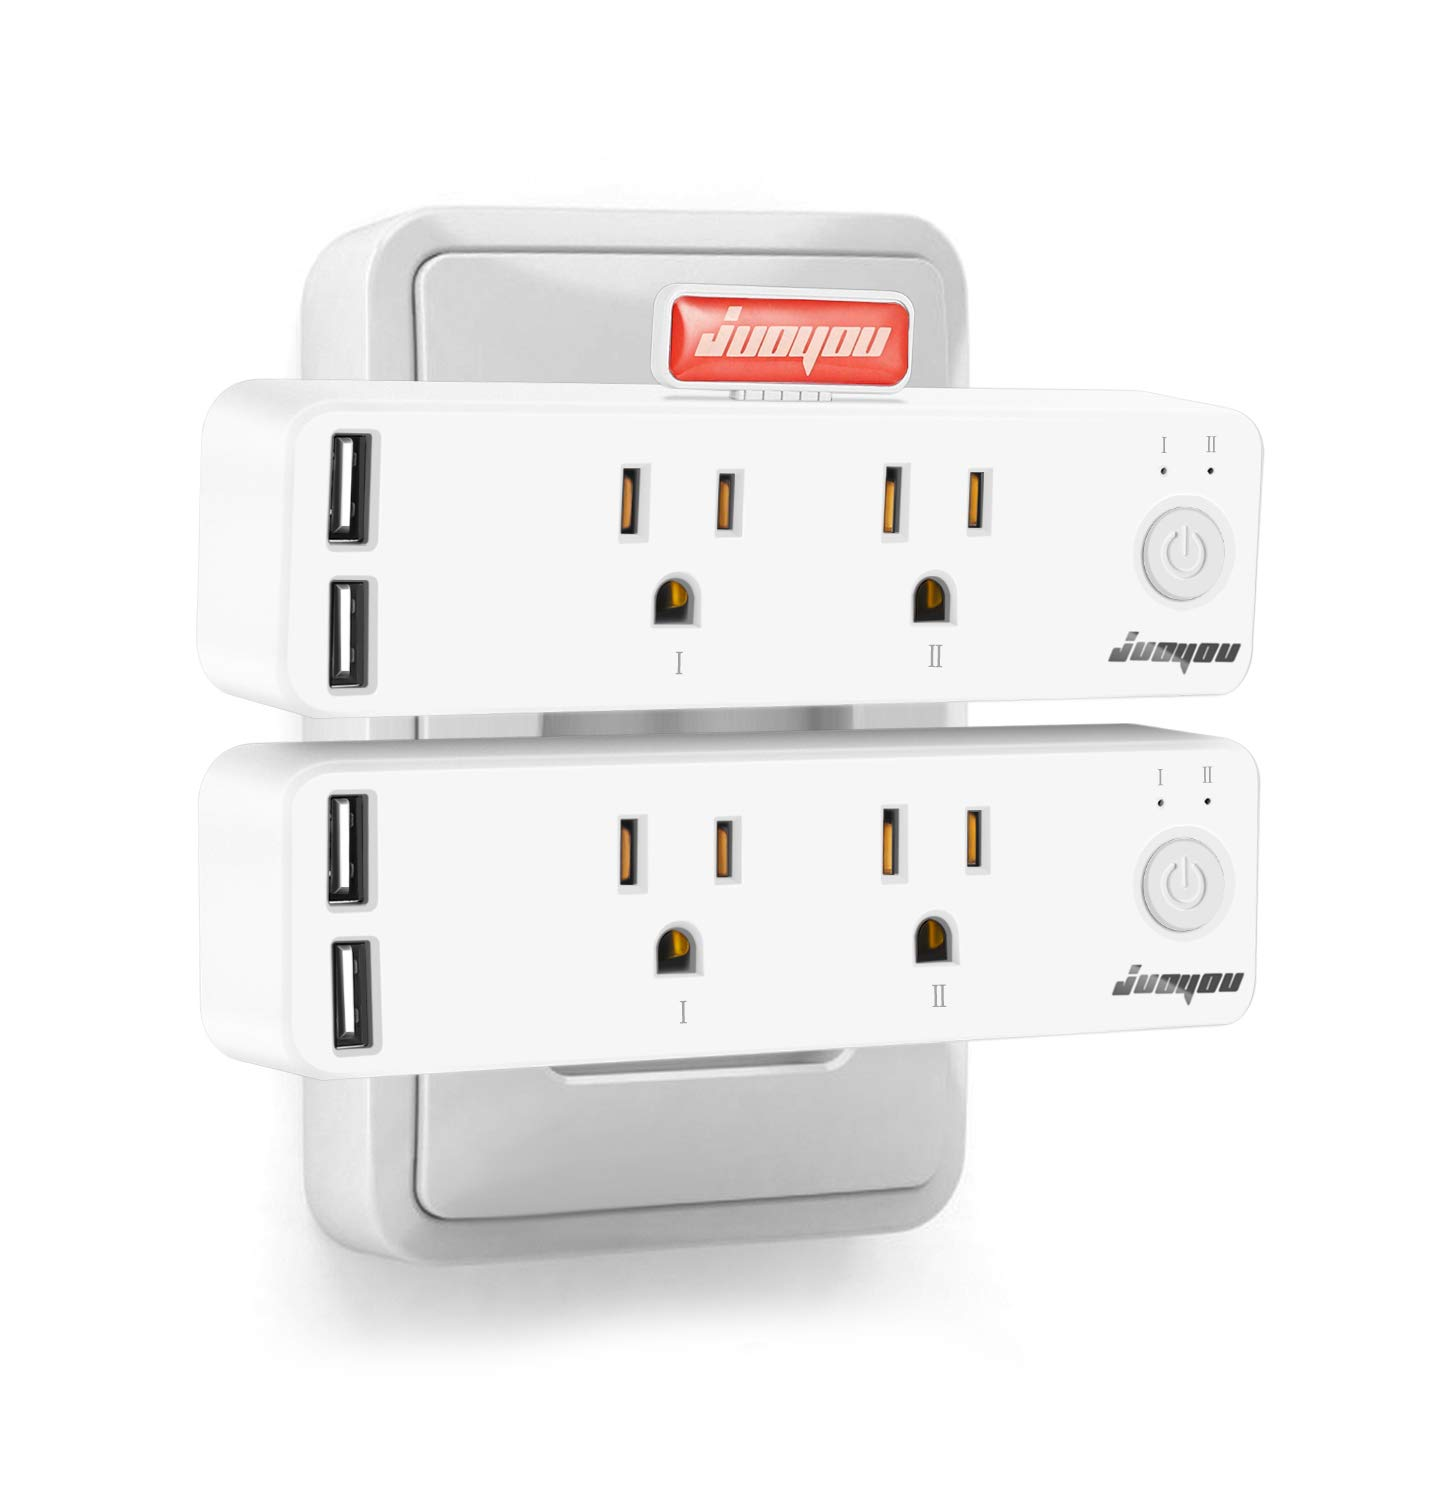 Smart Plug, JUOYOU Smart Outlets That Works with Alexa Google Home, 2 USB Ports and 2 WiFi Outlets, Overload Protection for Household Appliances,Voice & App Control,Timer Function (2 Pack)